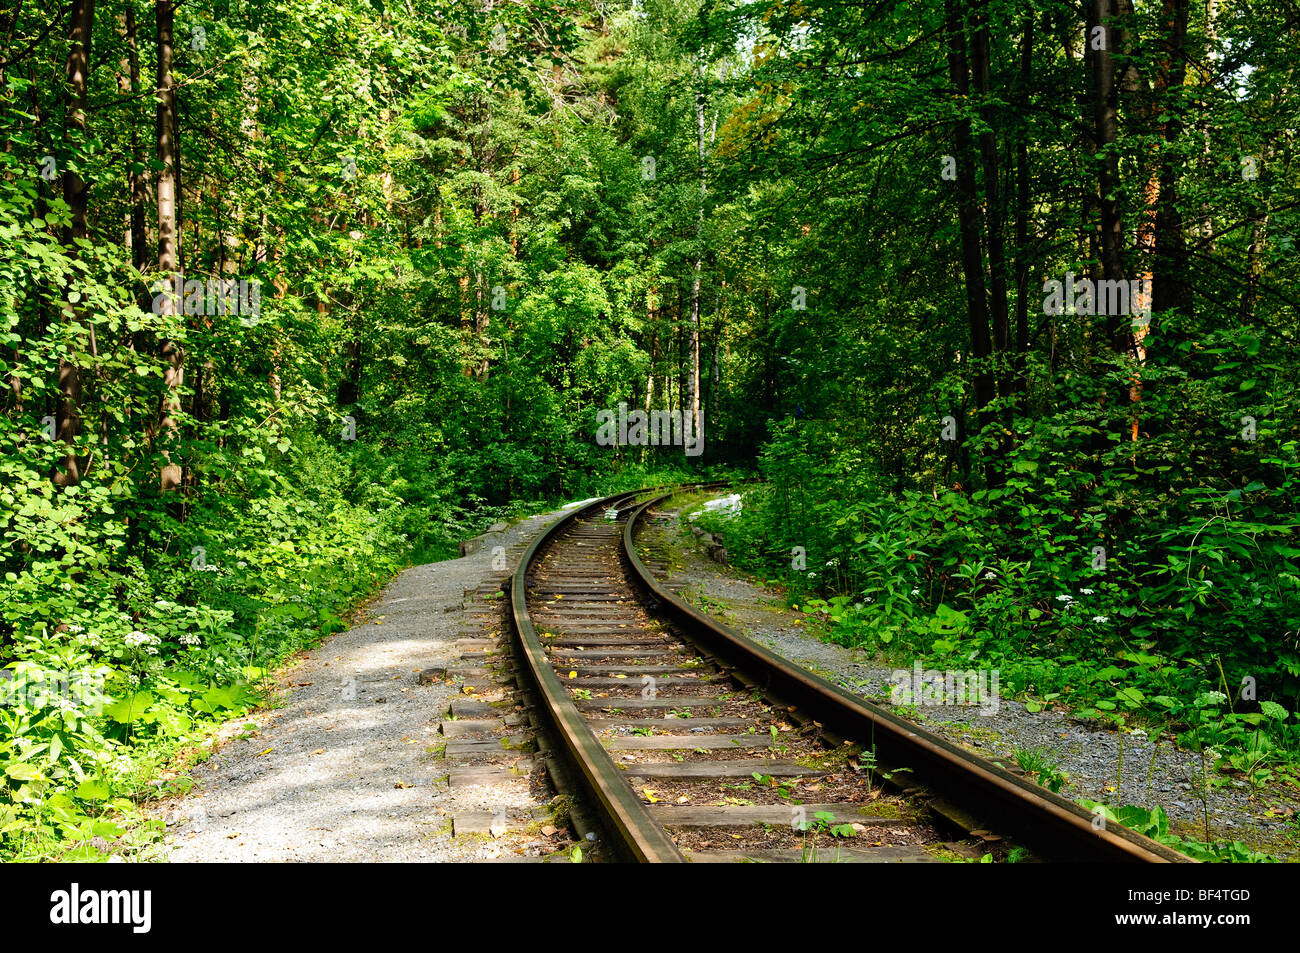 railroad track winding through forest - Stock Image